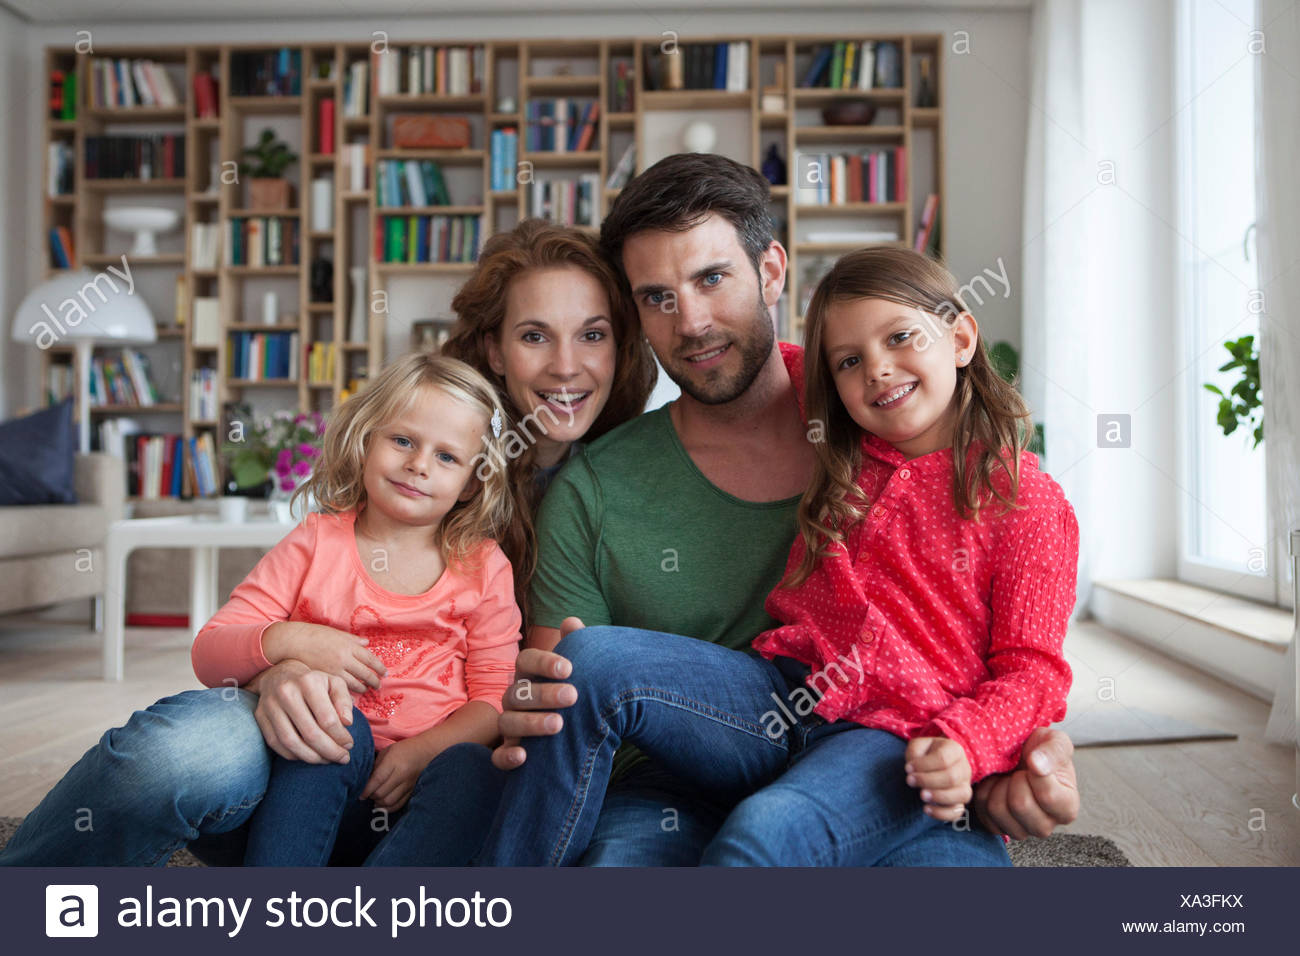 Family portrait of couple with two little girls sitting on the floor of living room - Stock Image